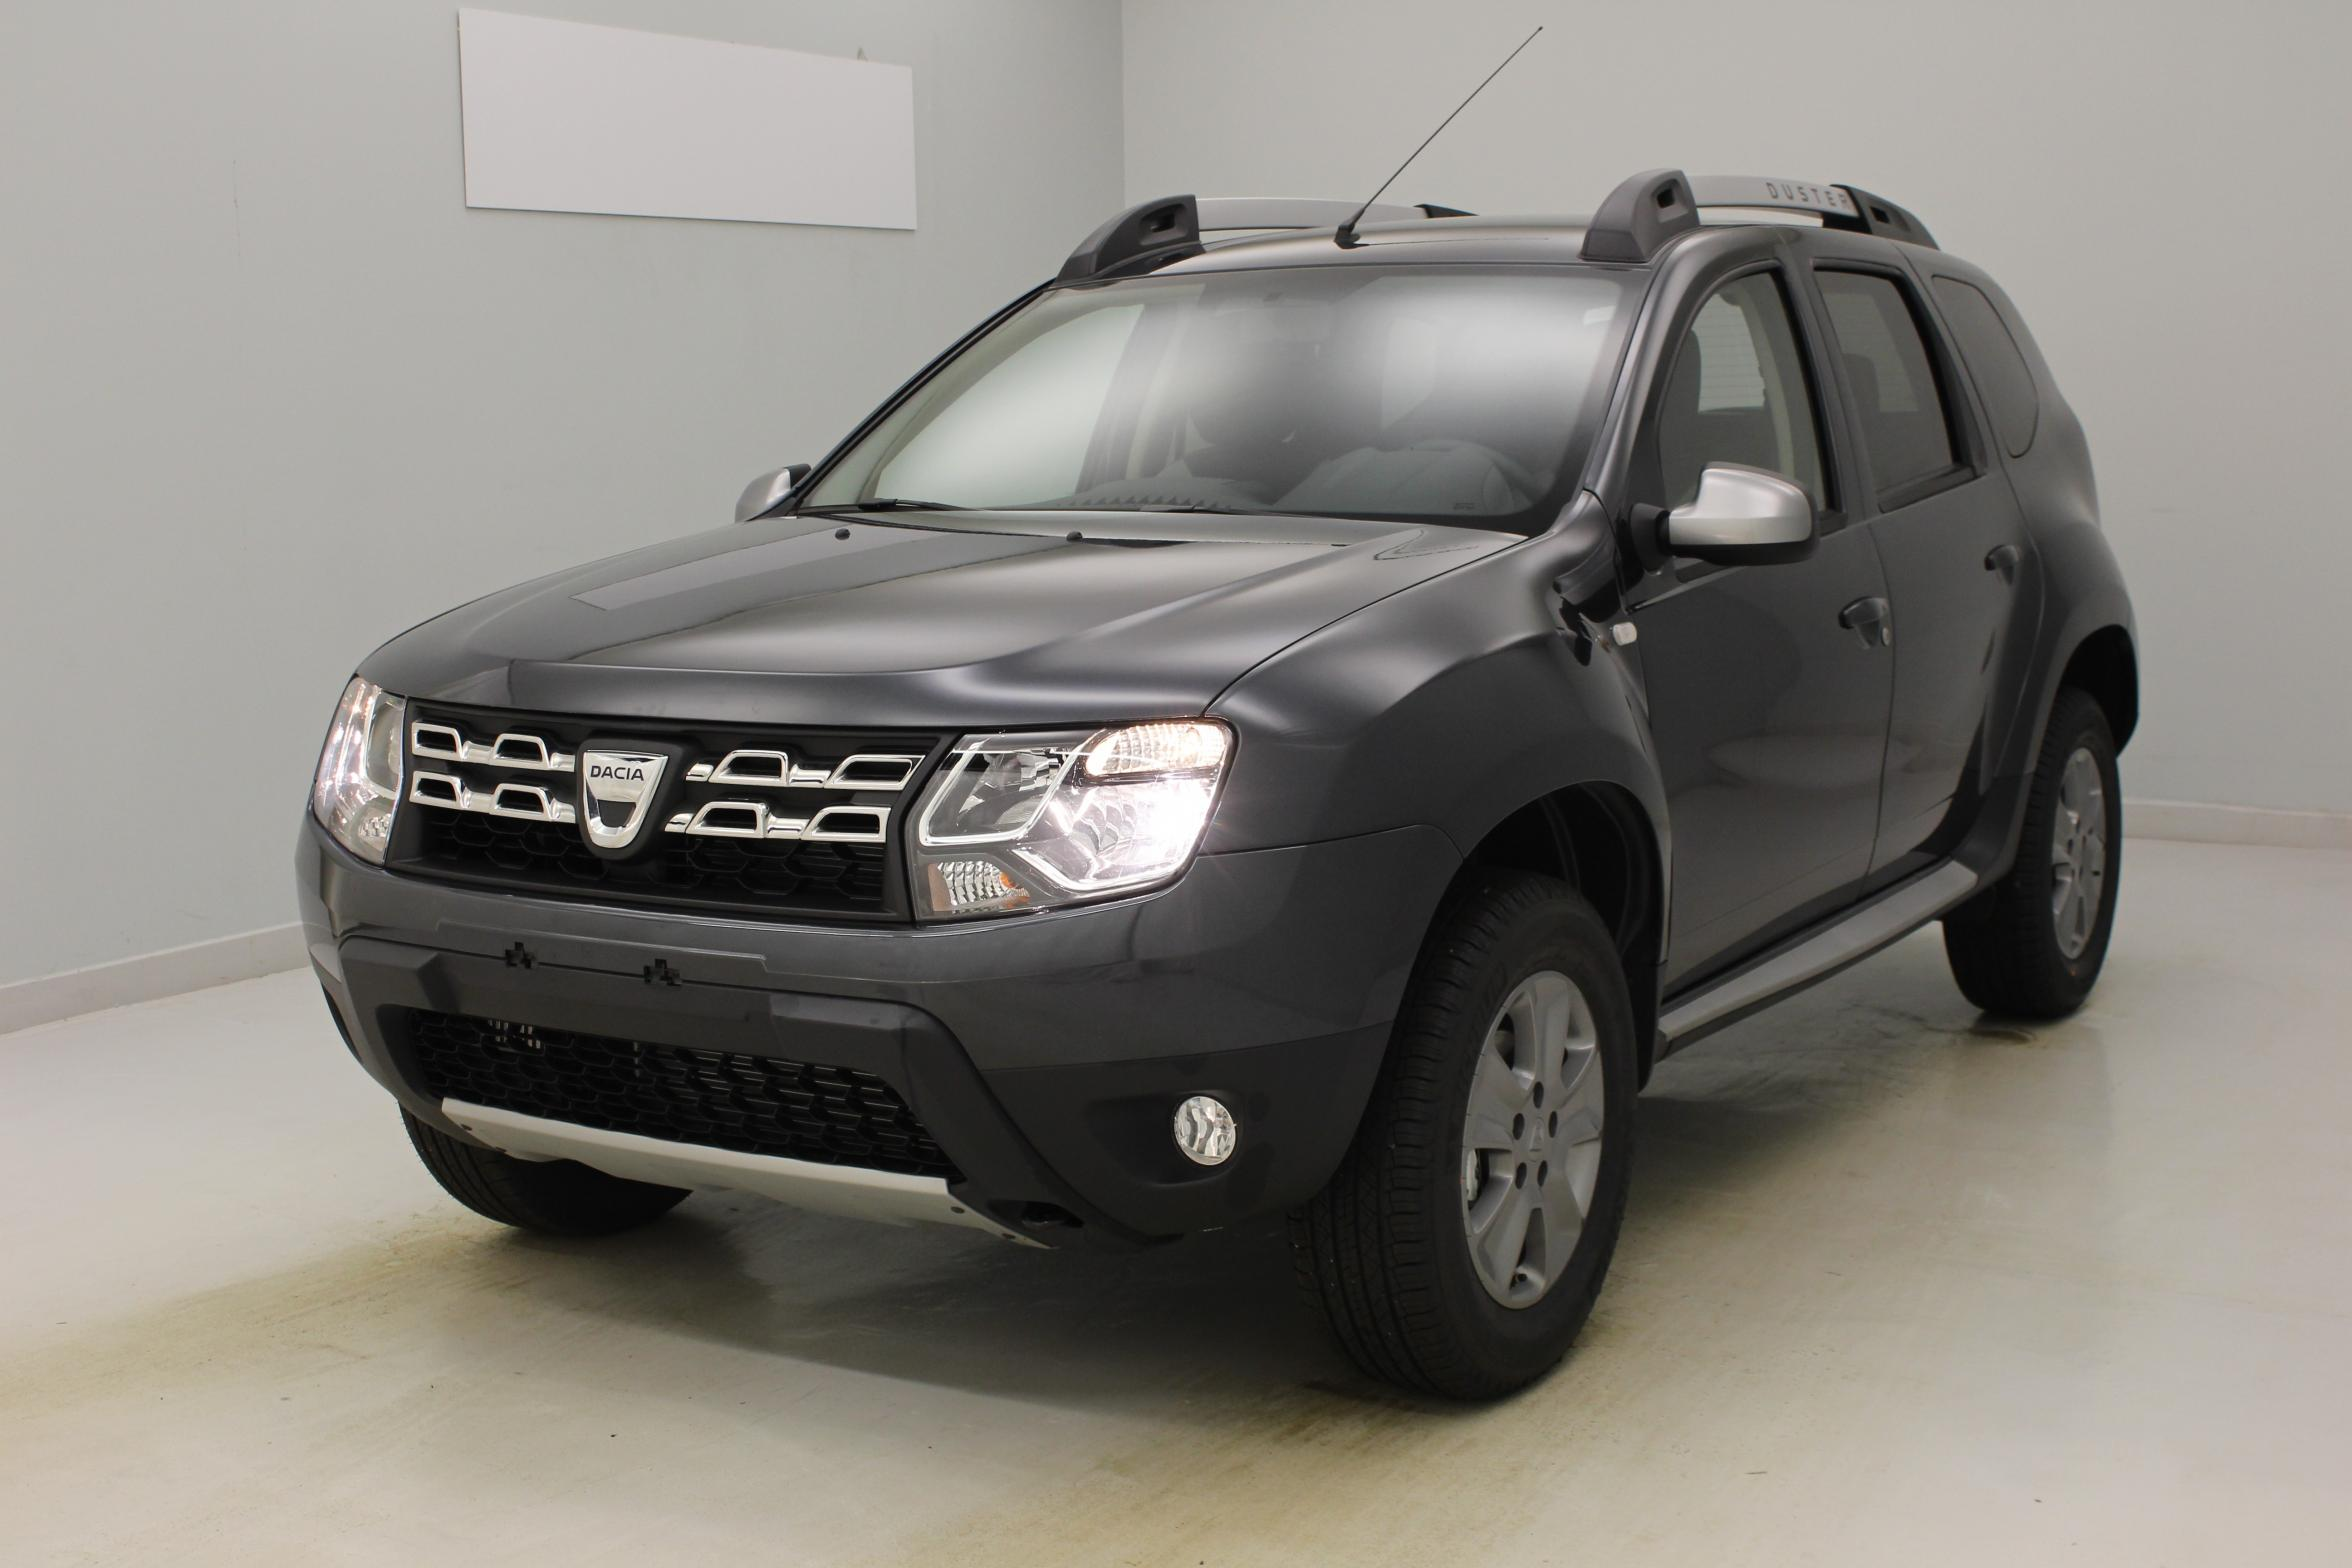 photos de dacia duster tce 125 4x2 prestige edition 2016 gris com te roue de secours avec. Black Bedroom Furniture Sets. Home Design Ideas